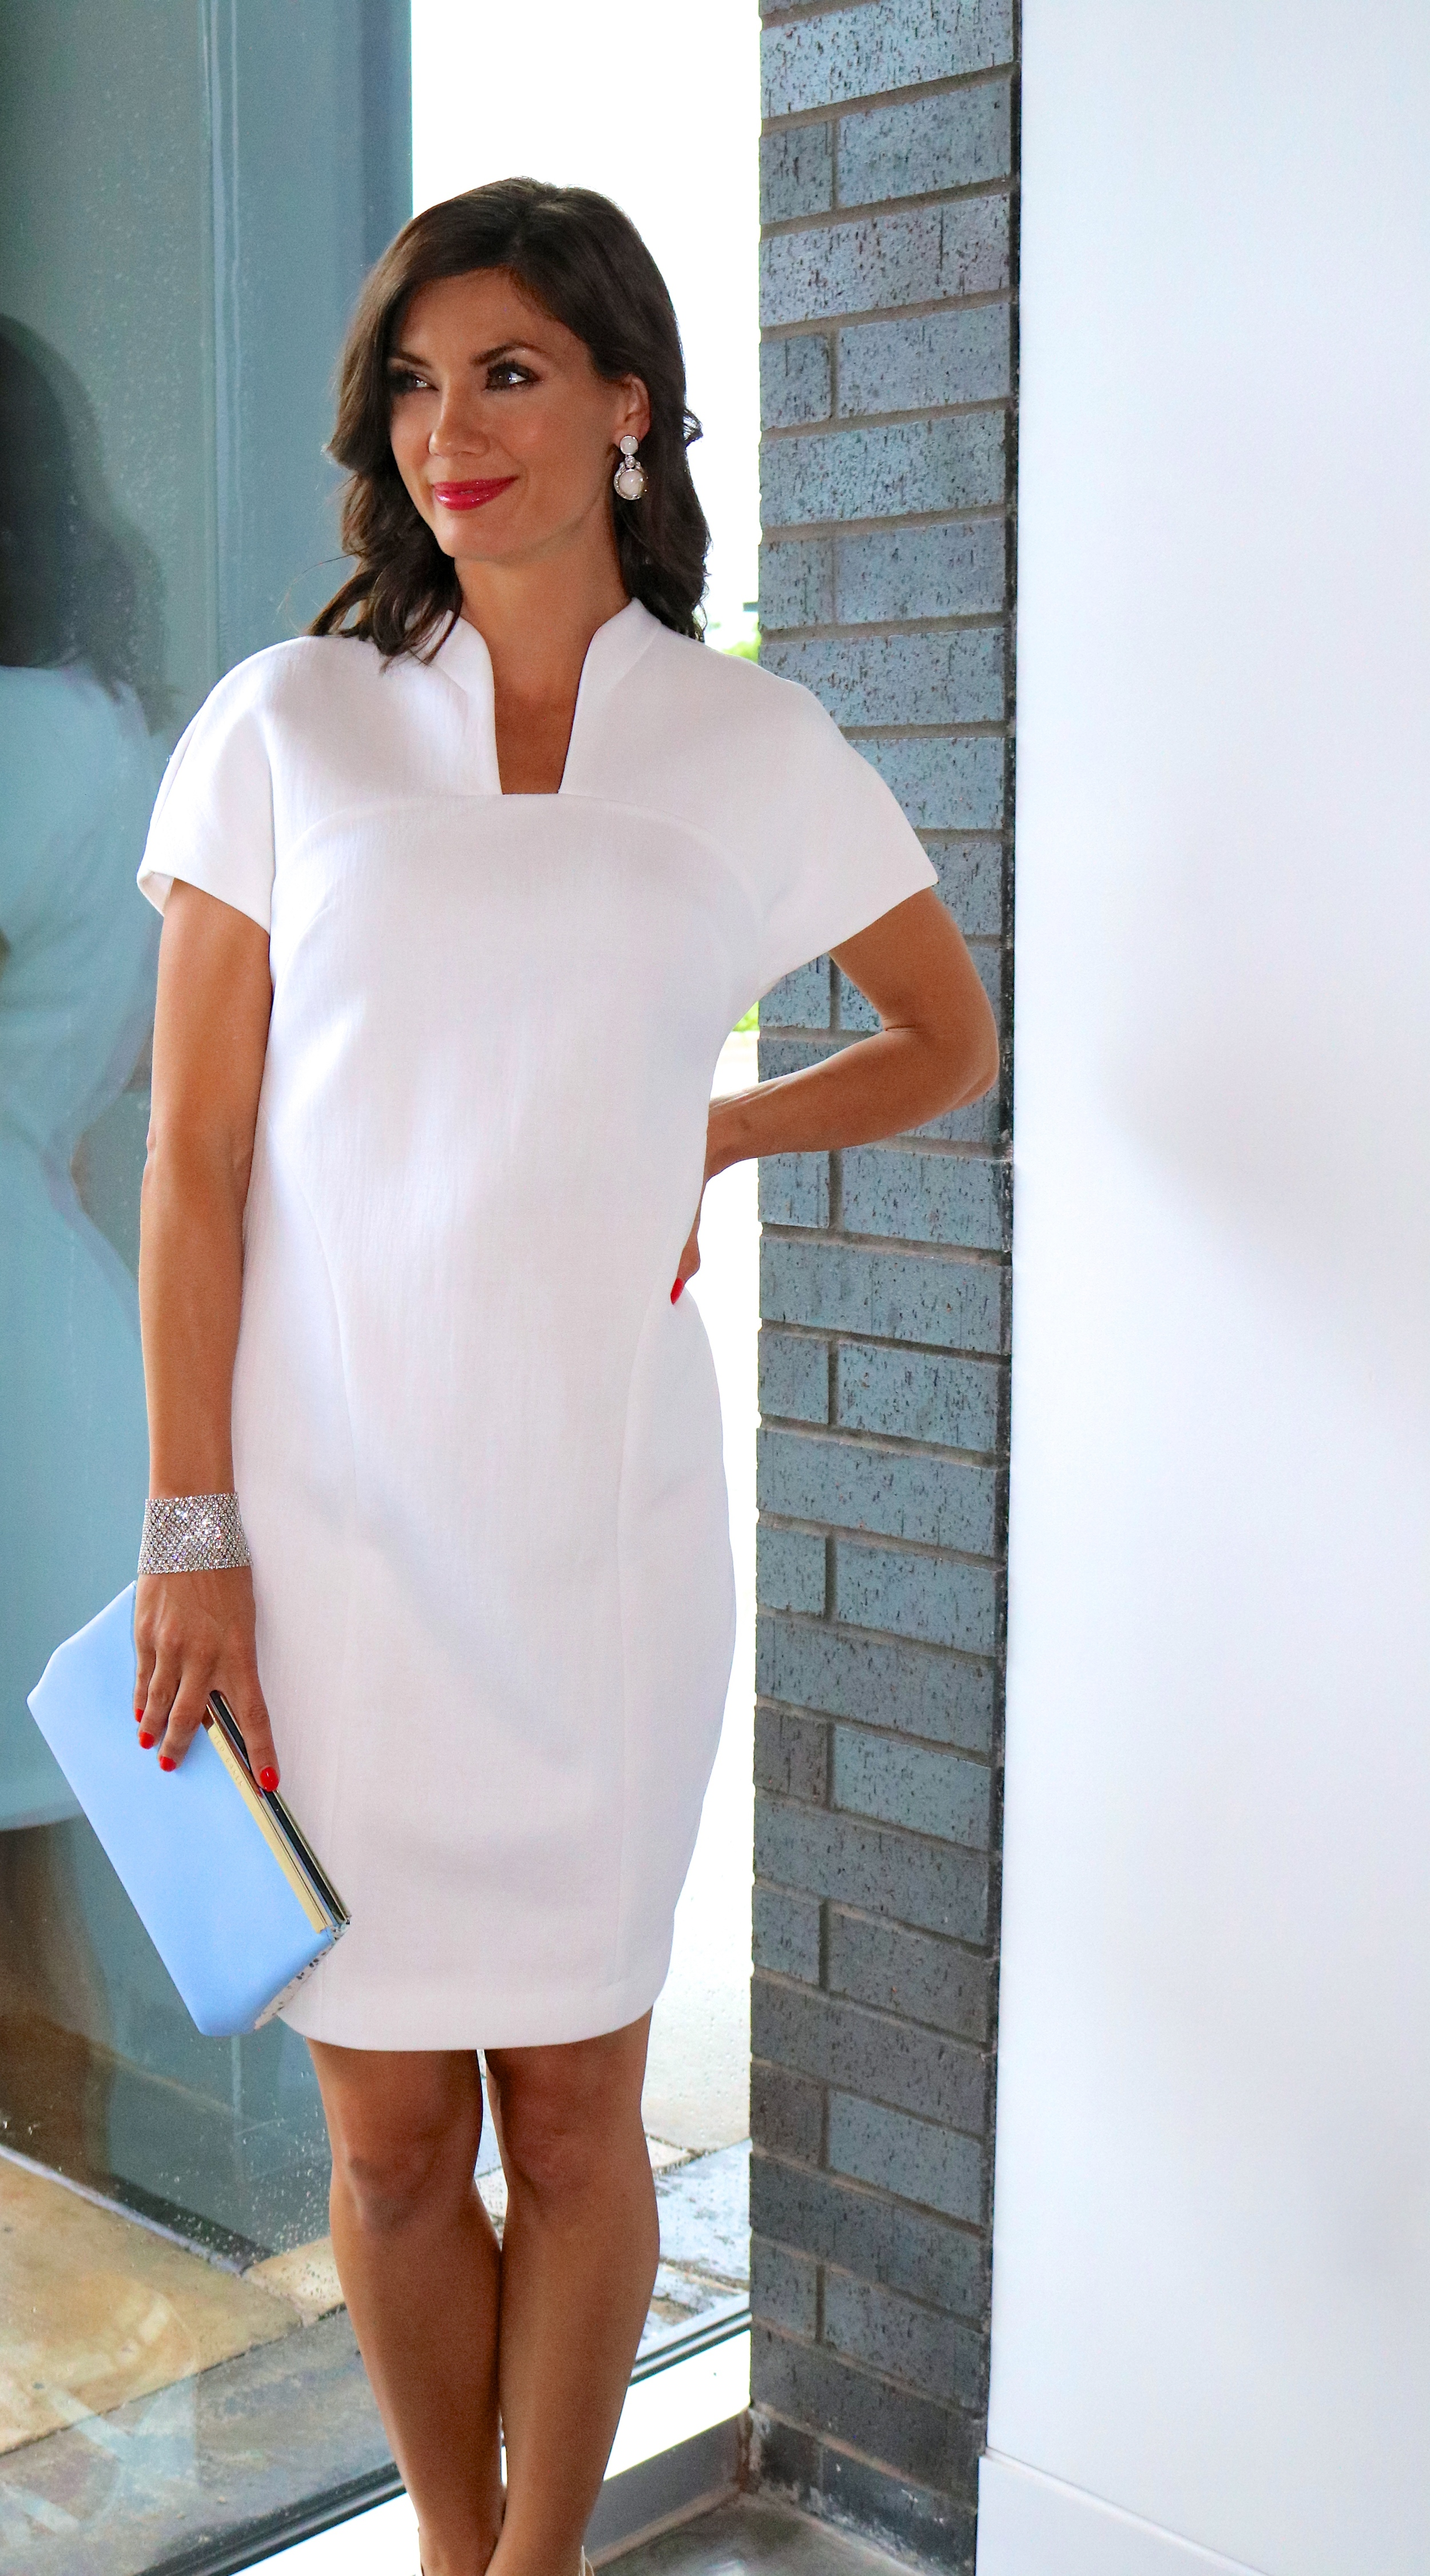 Karolina Zmarlak White Technical Cotton Rounded Shift and Ted Baker Exotic Clutchavailable in-store